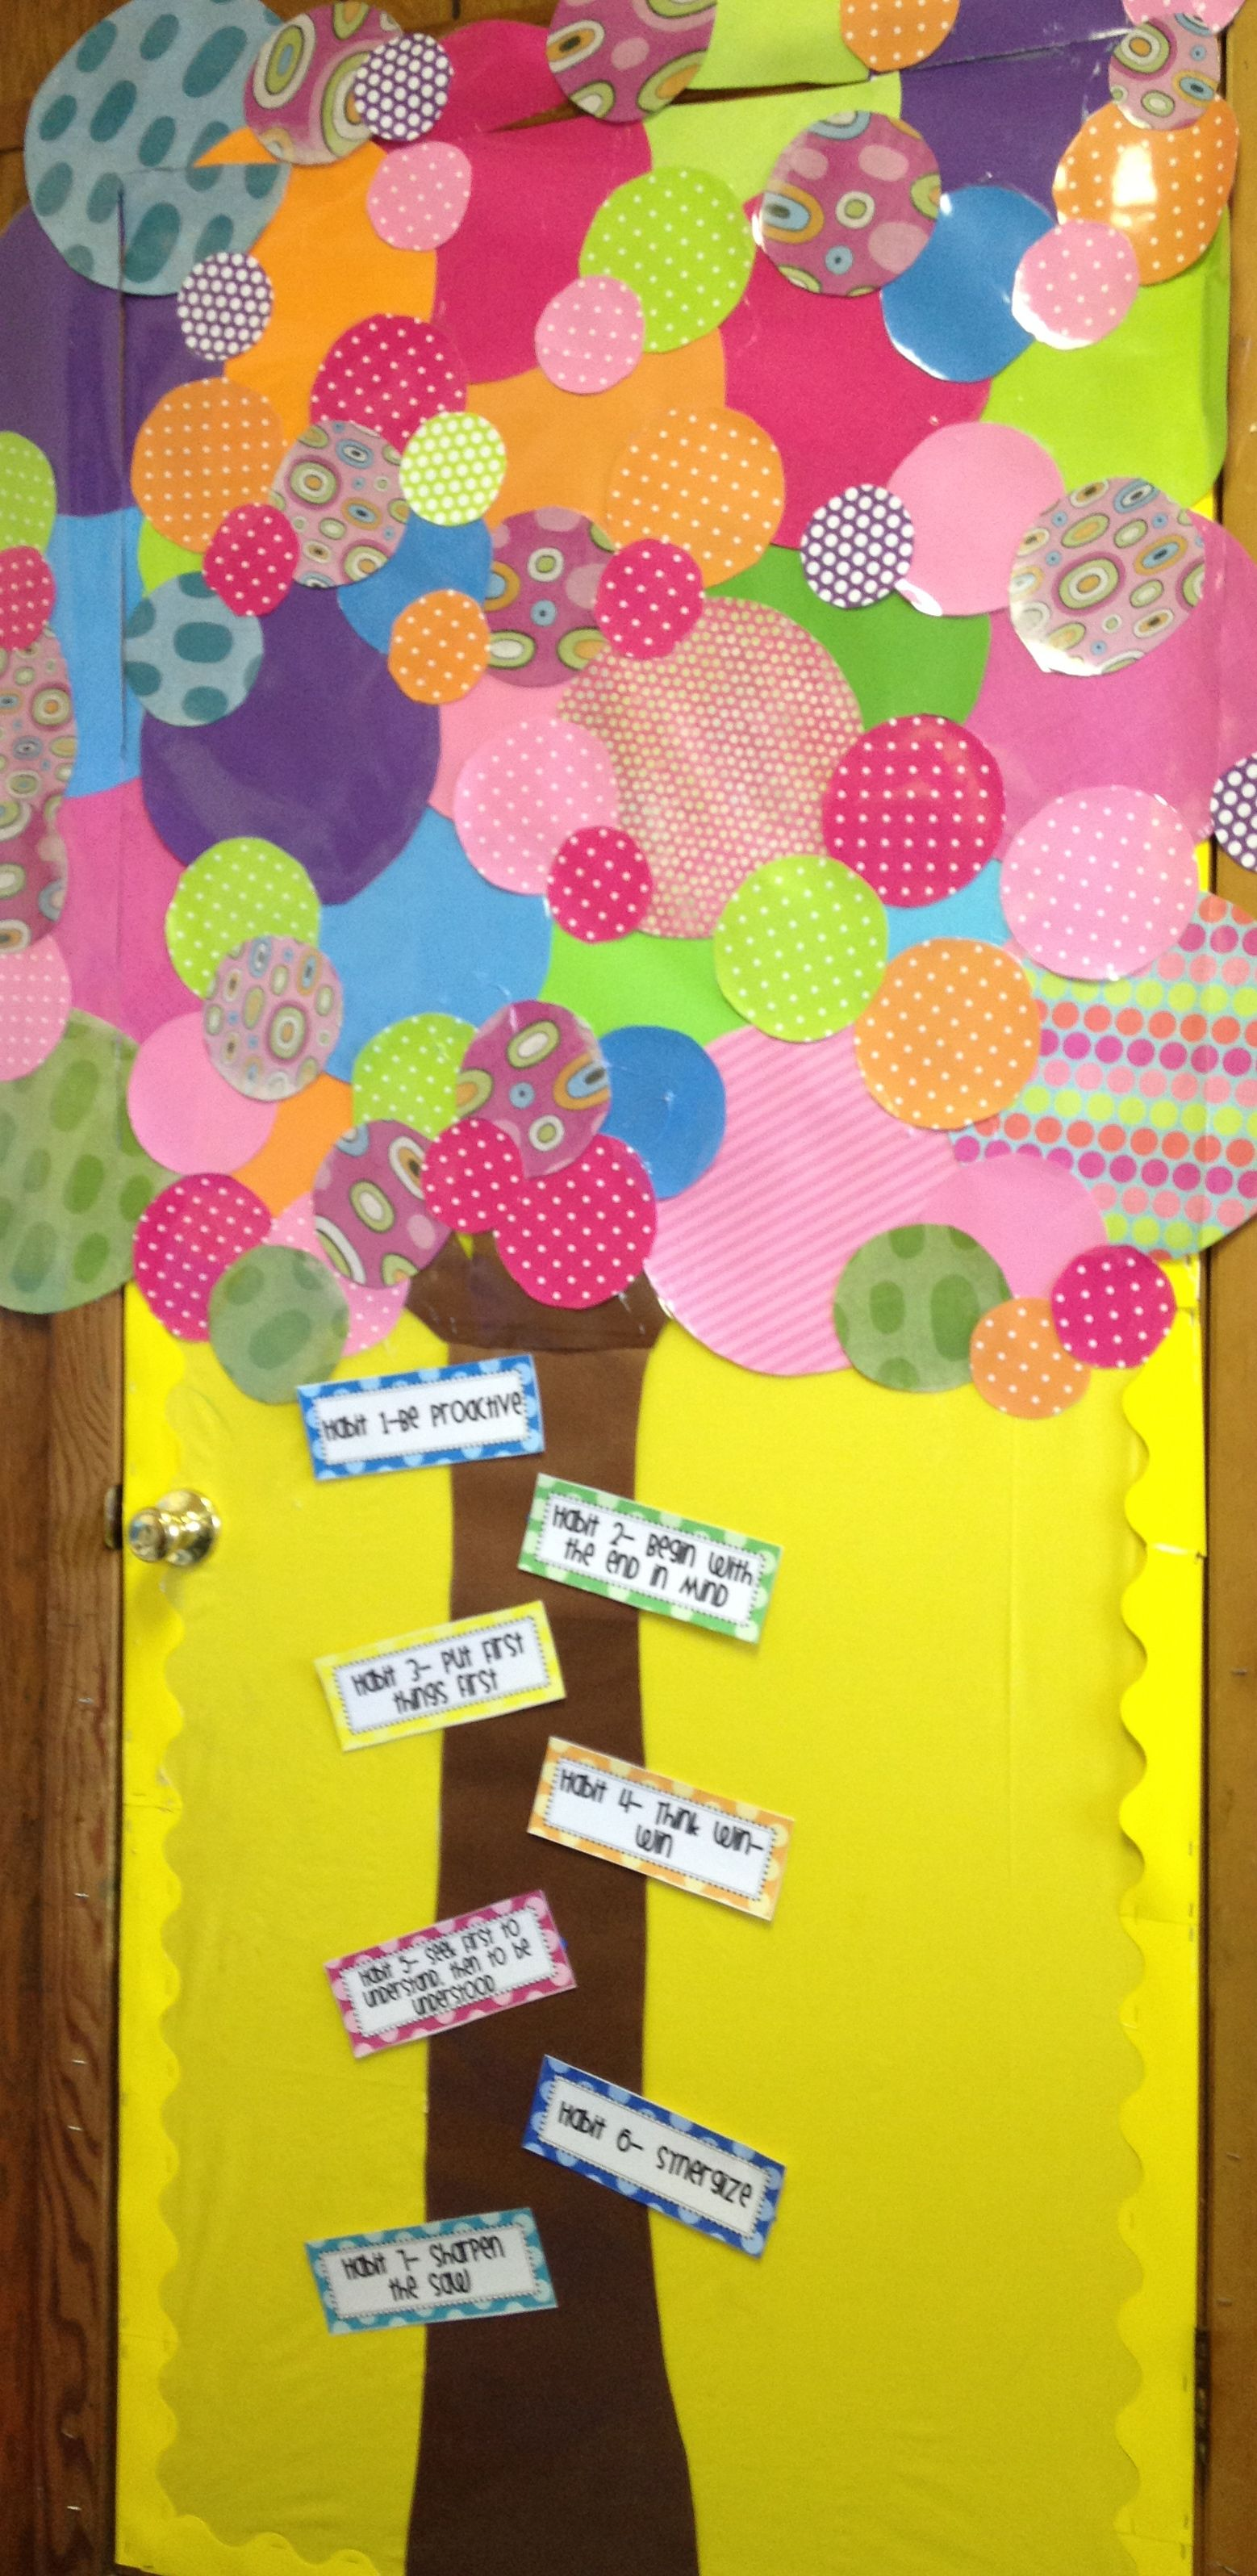 The leader in me bulletin board school and board for 7 habits tree mural